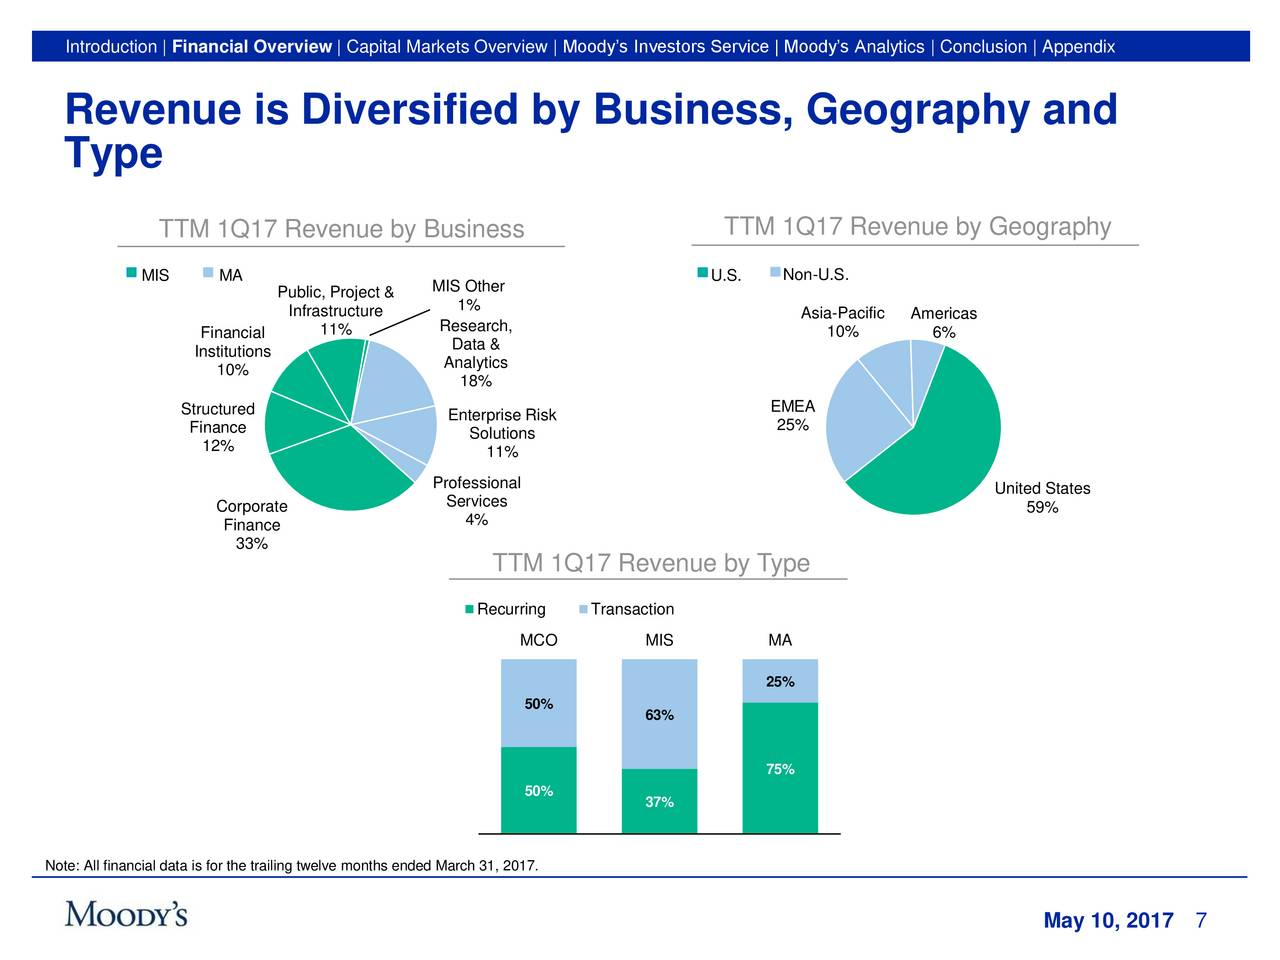 capital one financial corporation financial overview Alim: alimera sciences analysis and research report 2018-10-01 - asif overview the following discussion and analysis should be read in conjunction with its unaudited interim condensed consolidated financial statements and the related notes that appear elsewhere in this quarterly report on form 10-q.